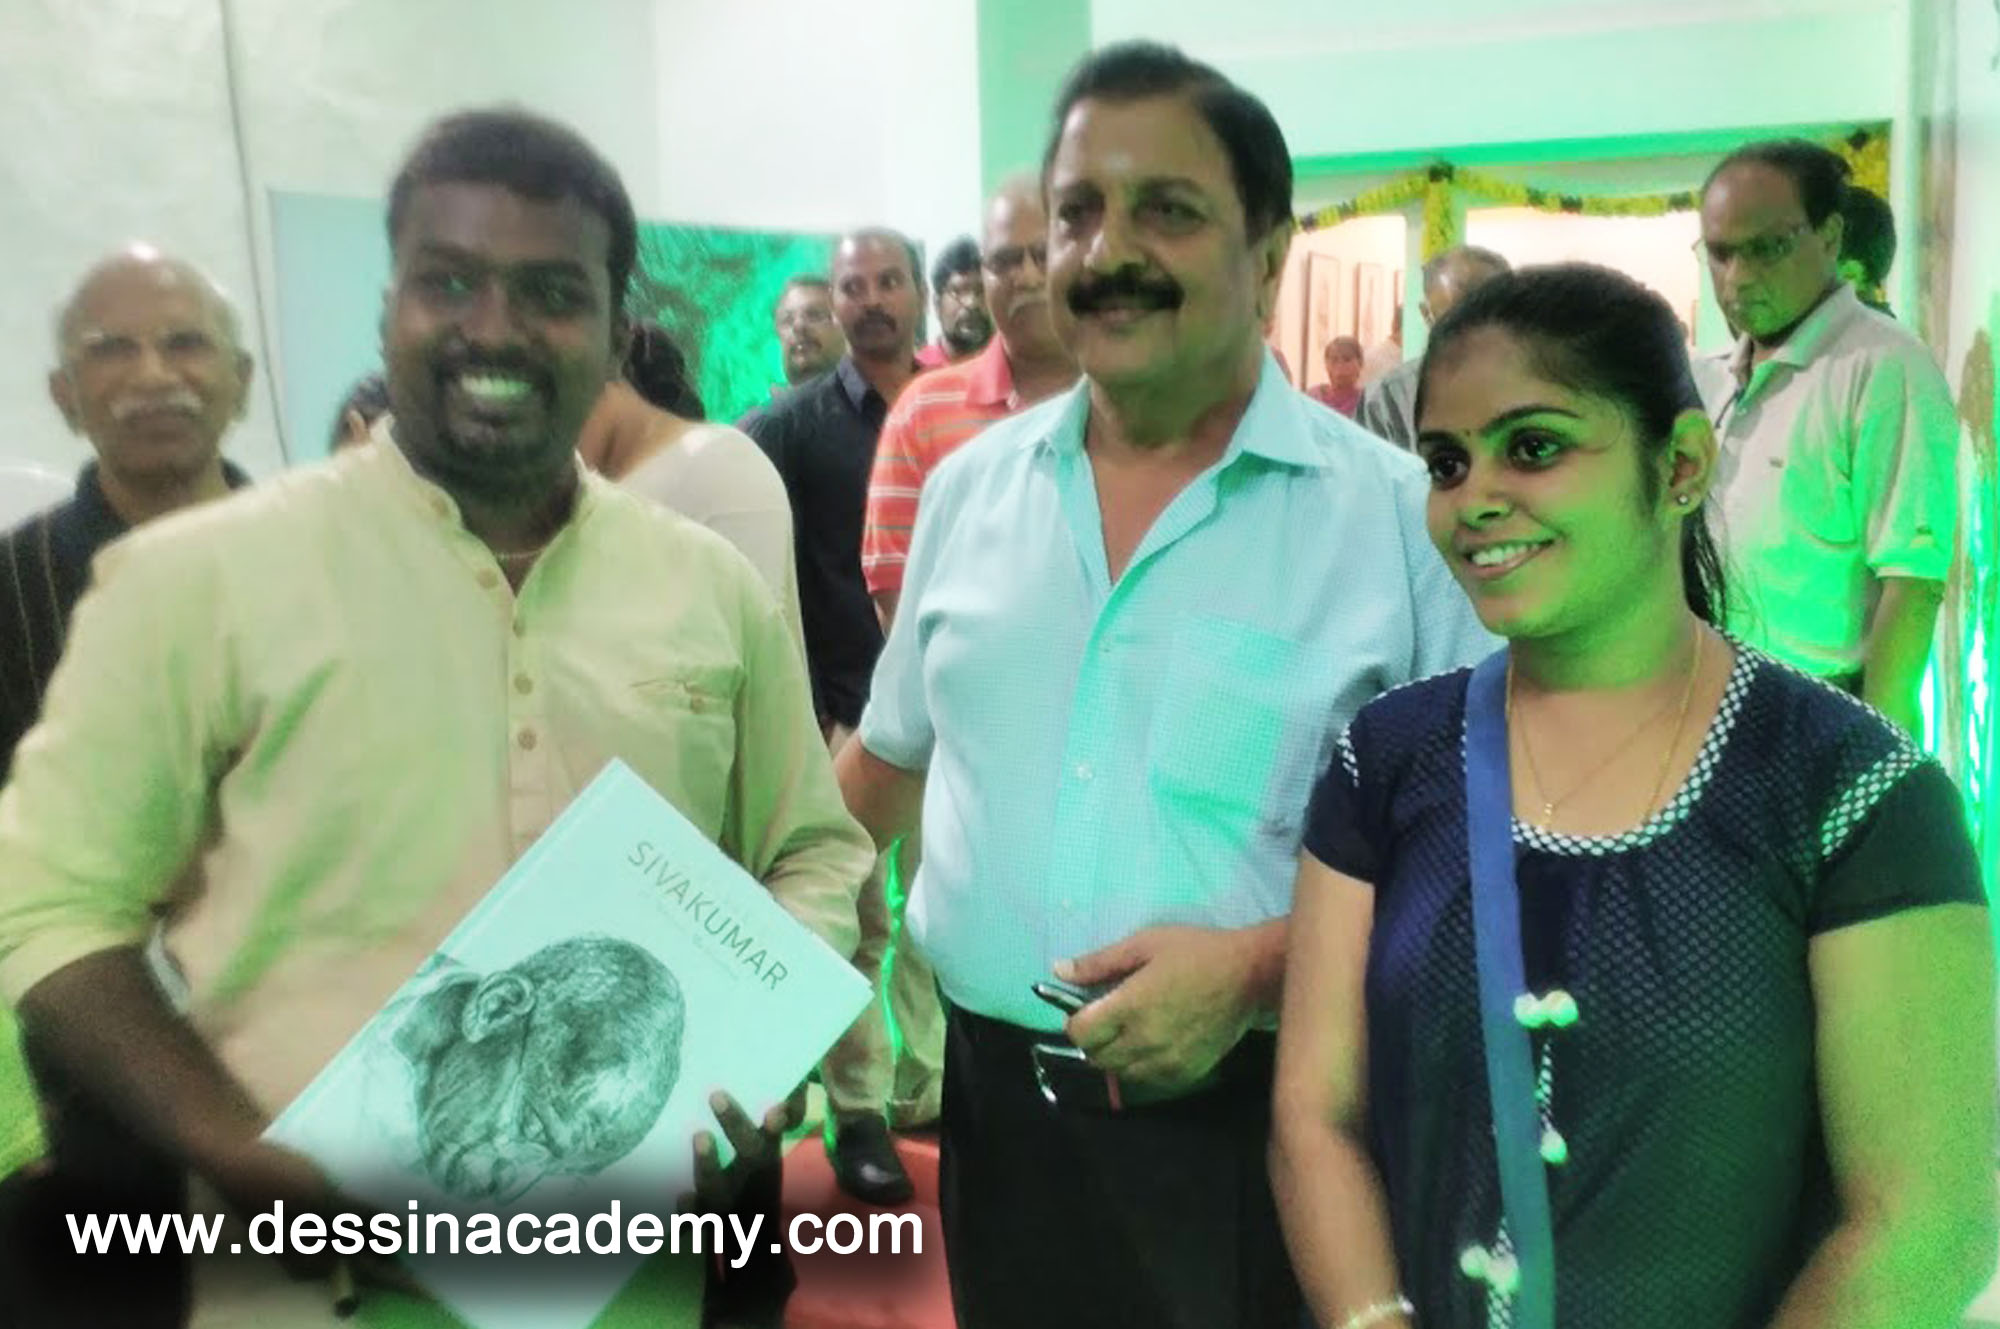 Dessin School of arts Event Gallery 4, charcoal Drawing Institute For Kids in chennaiDessin School of Arts